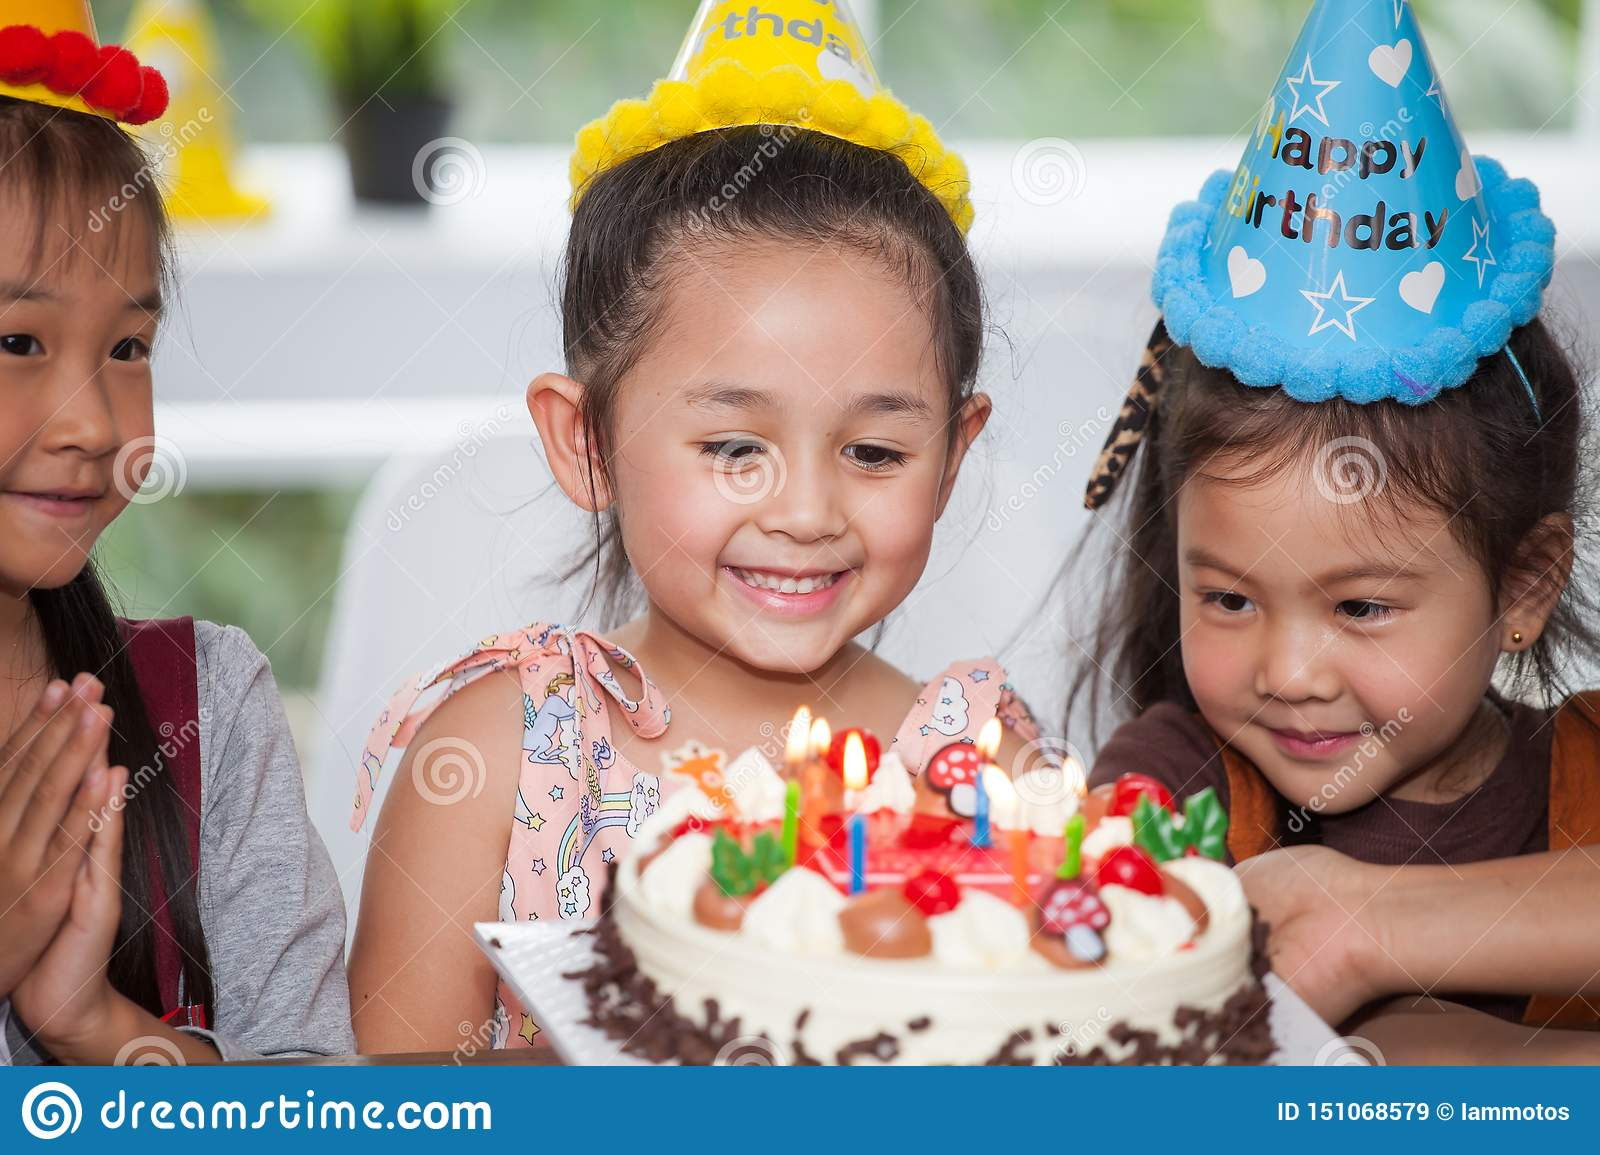 group of happy children girl with hat blowing candles on birthday cake together celebrating in party . adorable kids gathered